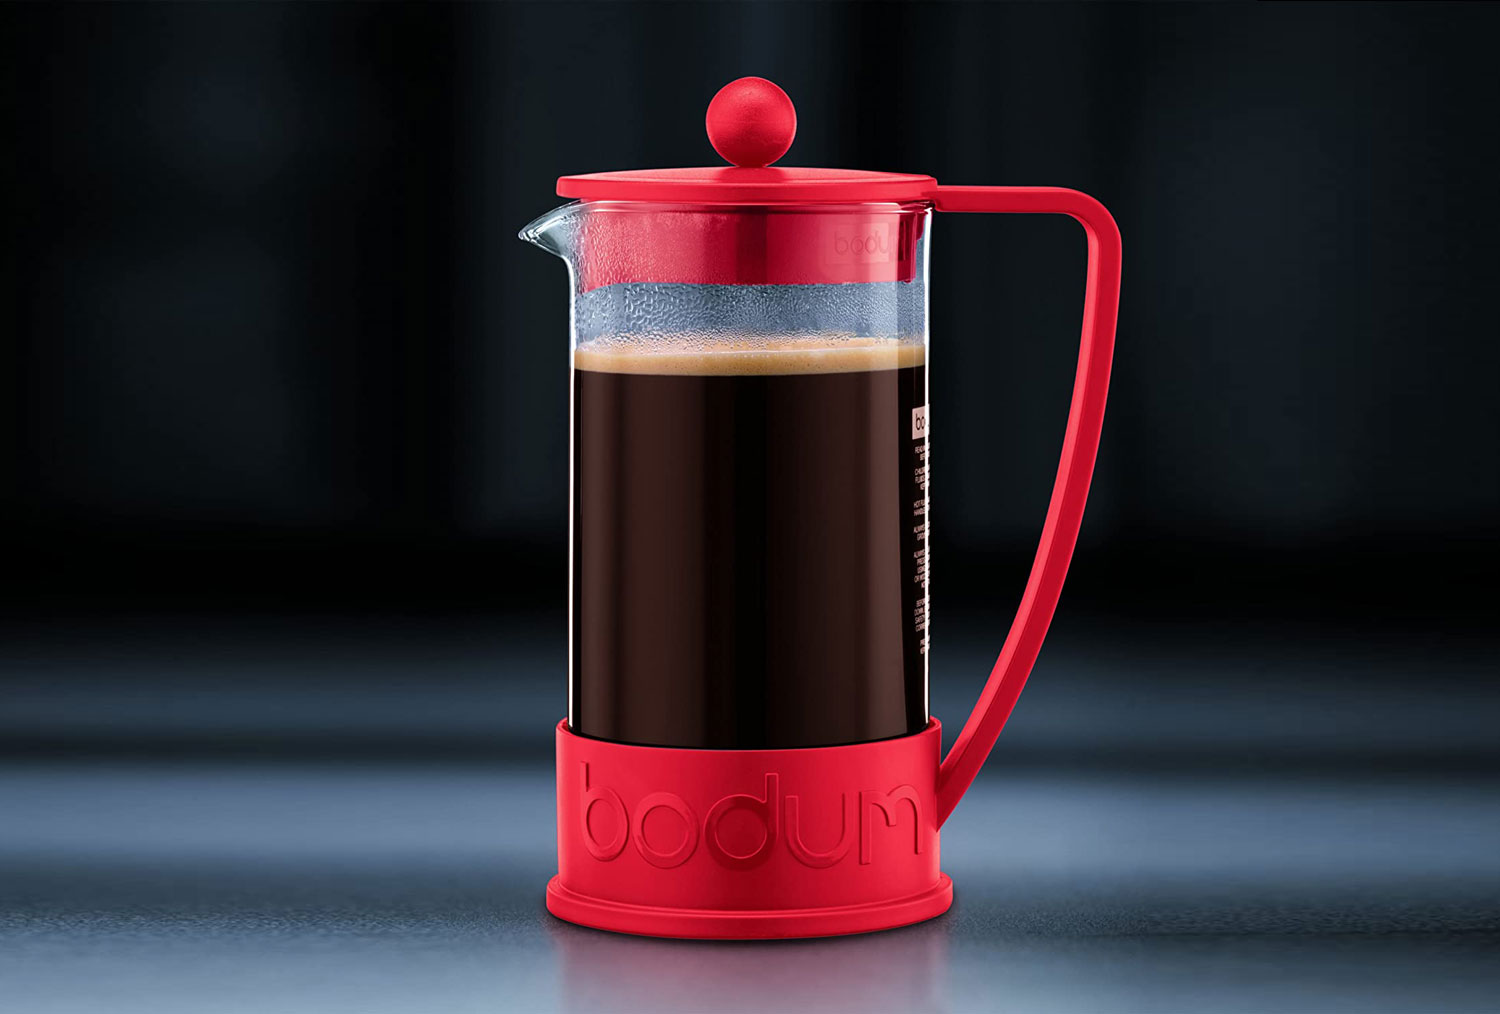 If you need to make a liter of coffee, here's a French press for you